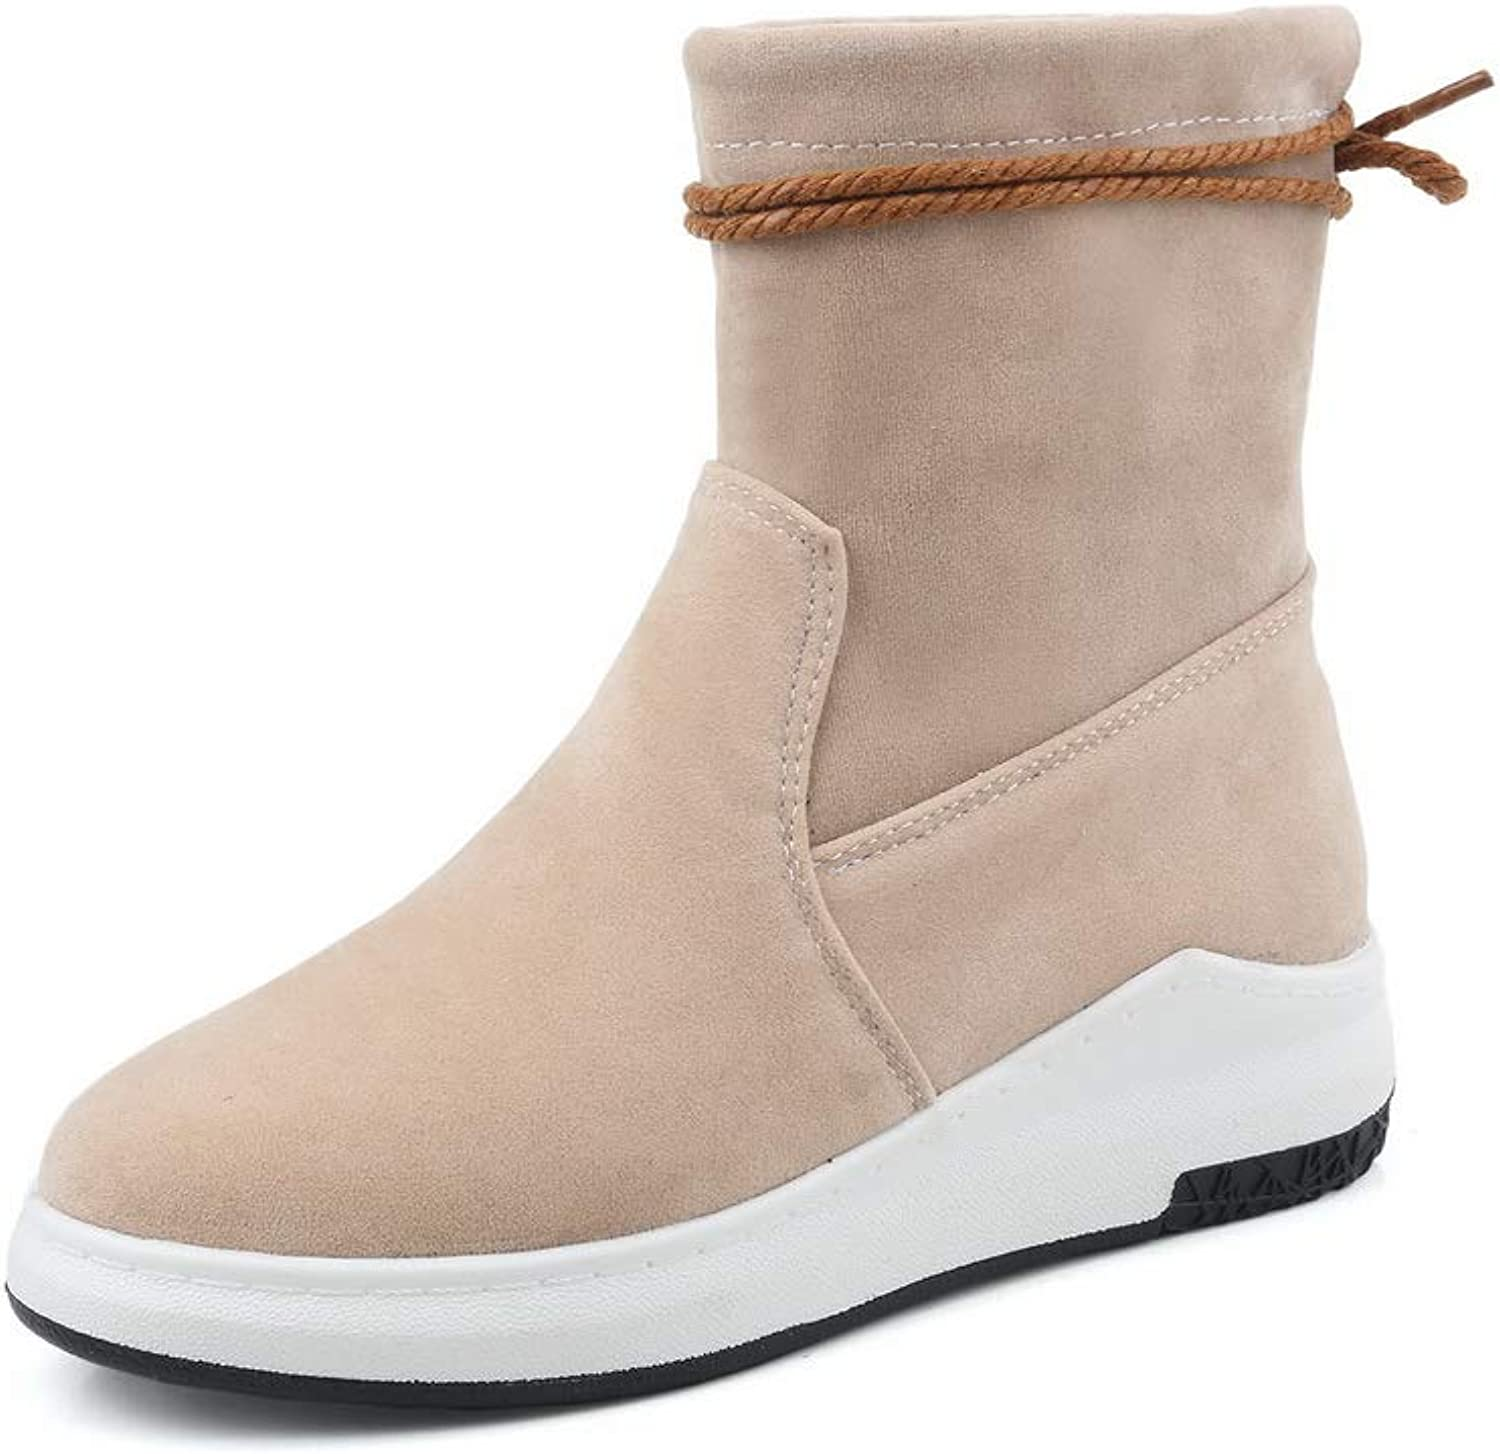 1TO9 Womens Comfort Bucket-Style Dress Urethane Boots MNS02836